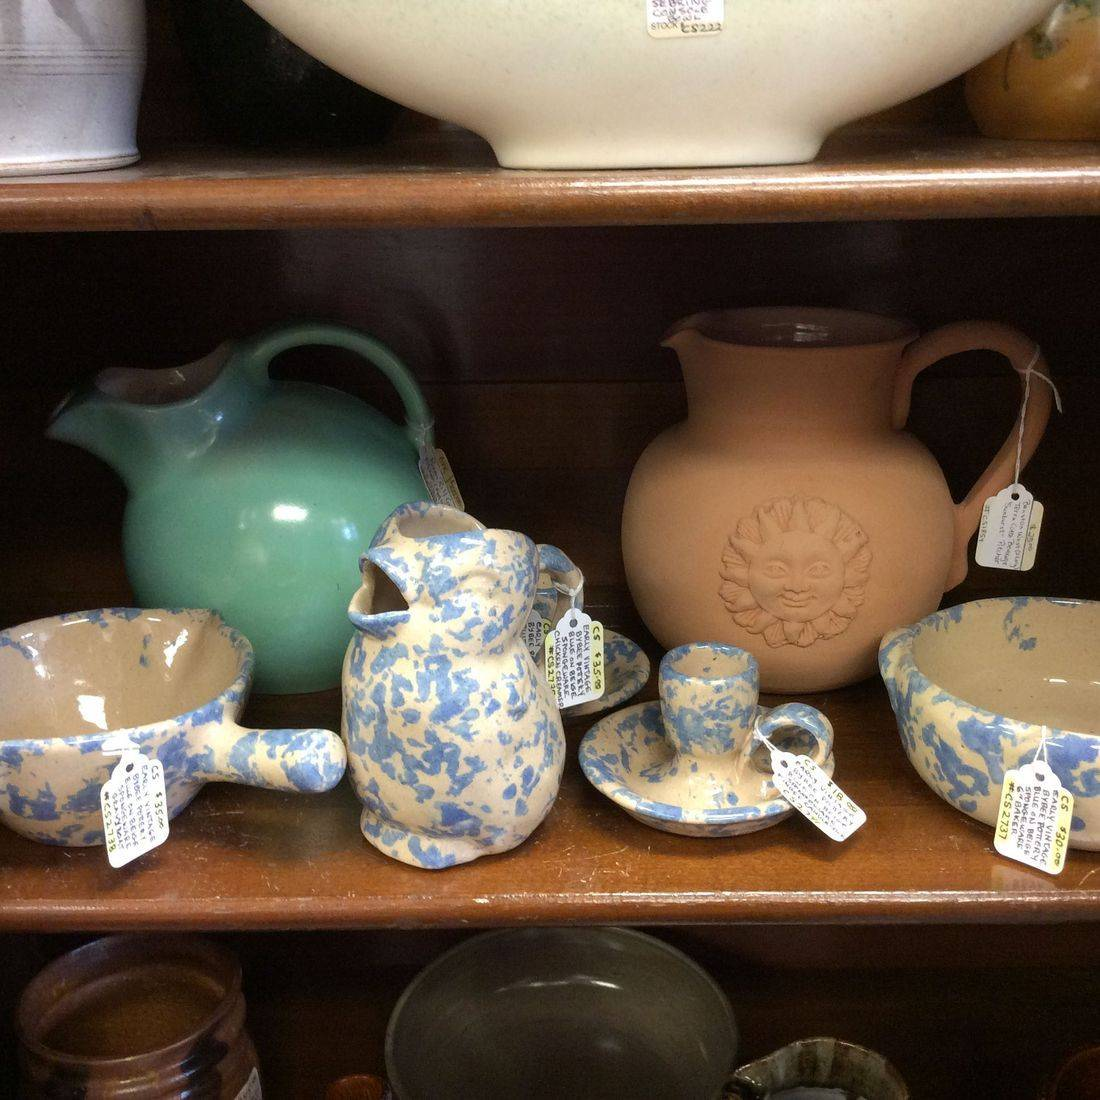 "Bybee Pottery Spongeware - Gravyboat  $35,  Chicken Creamer  $35,  Finger Candlestick  $18,  6"" Baker  $30,  1930's Rum Rill, (Red Wing), Green Pitcher  $25, Benston West, Terra Cotta 'Sunburst', Pitcher  $25.00"